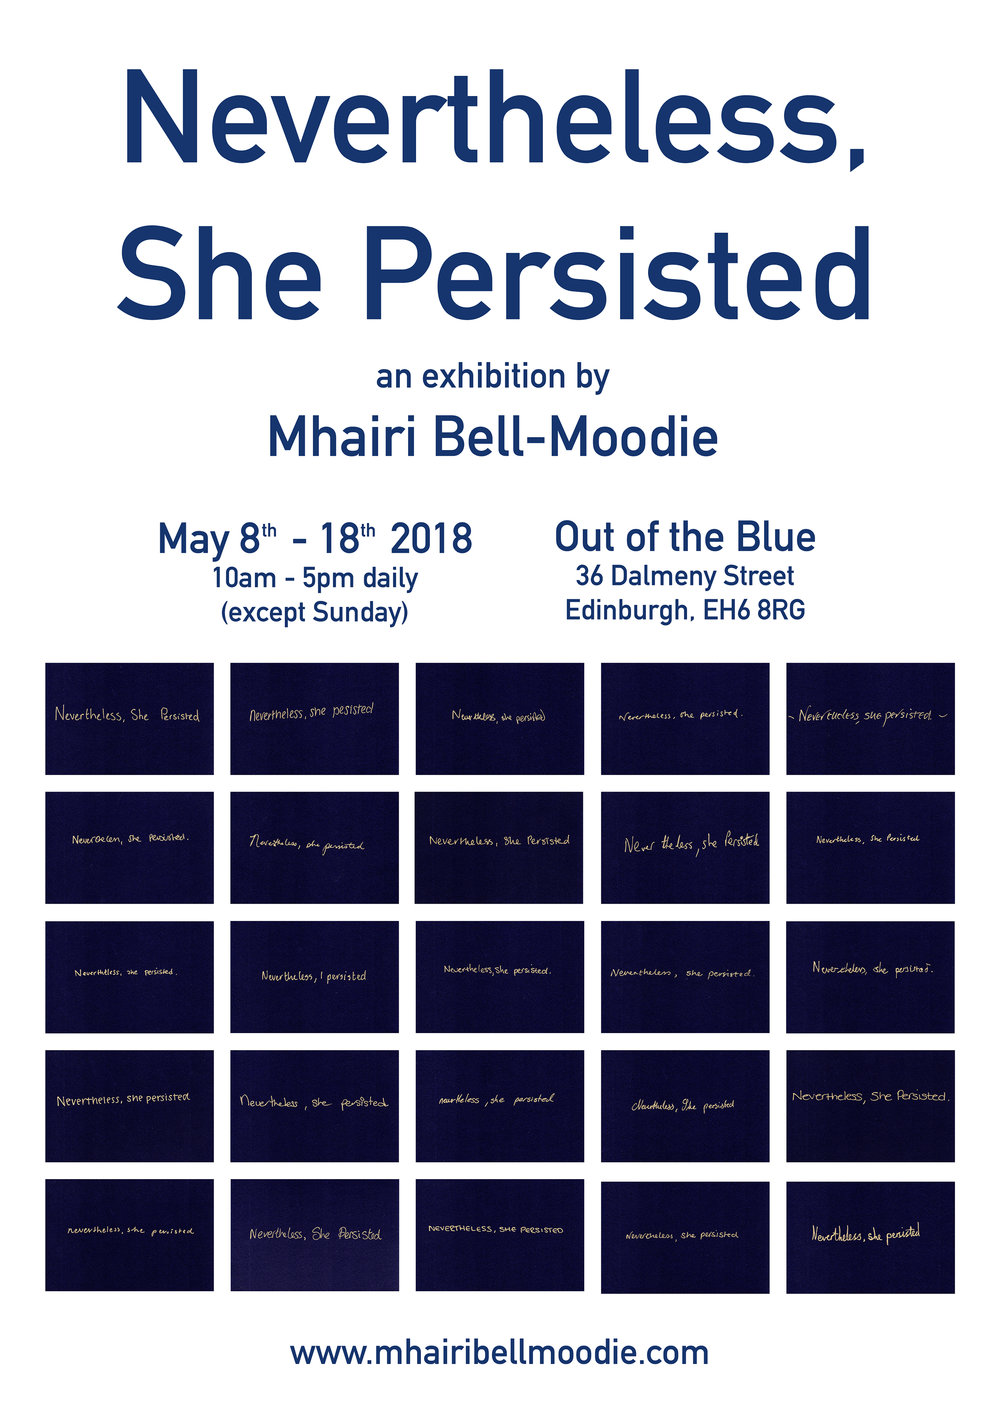 Nevertheless, She Persisted at Out of the Blue, Edinburgh